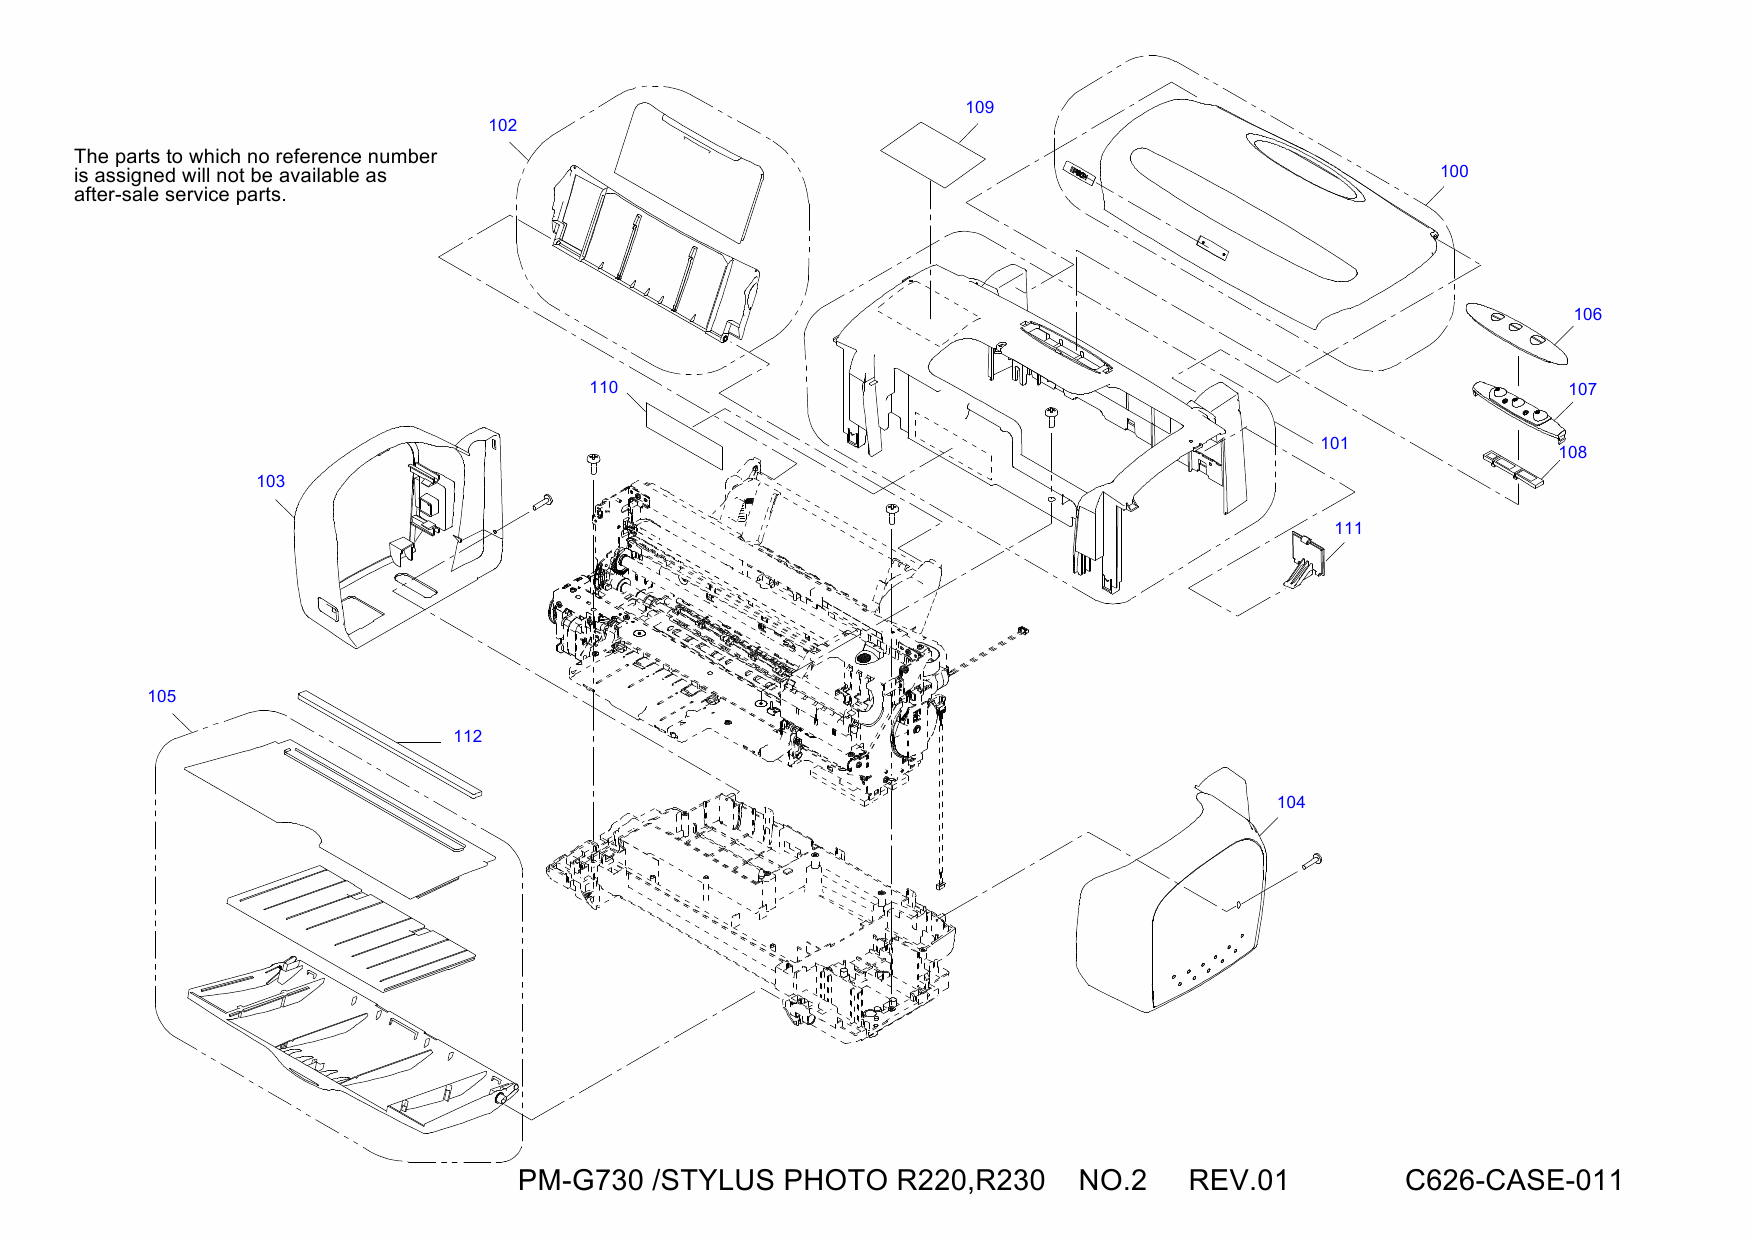 EPSON StylusPhoto R220 R230 Parts Manual